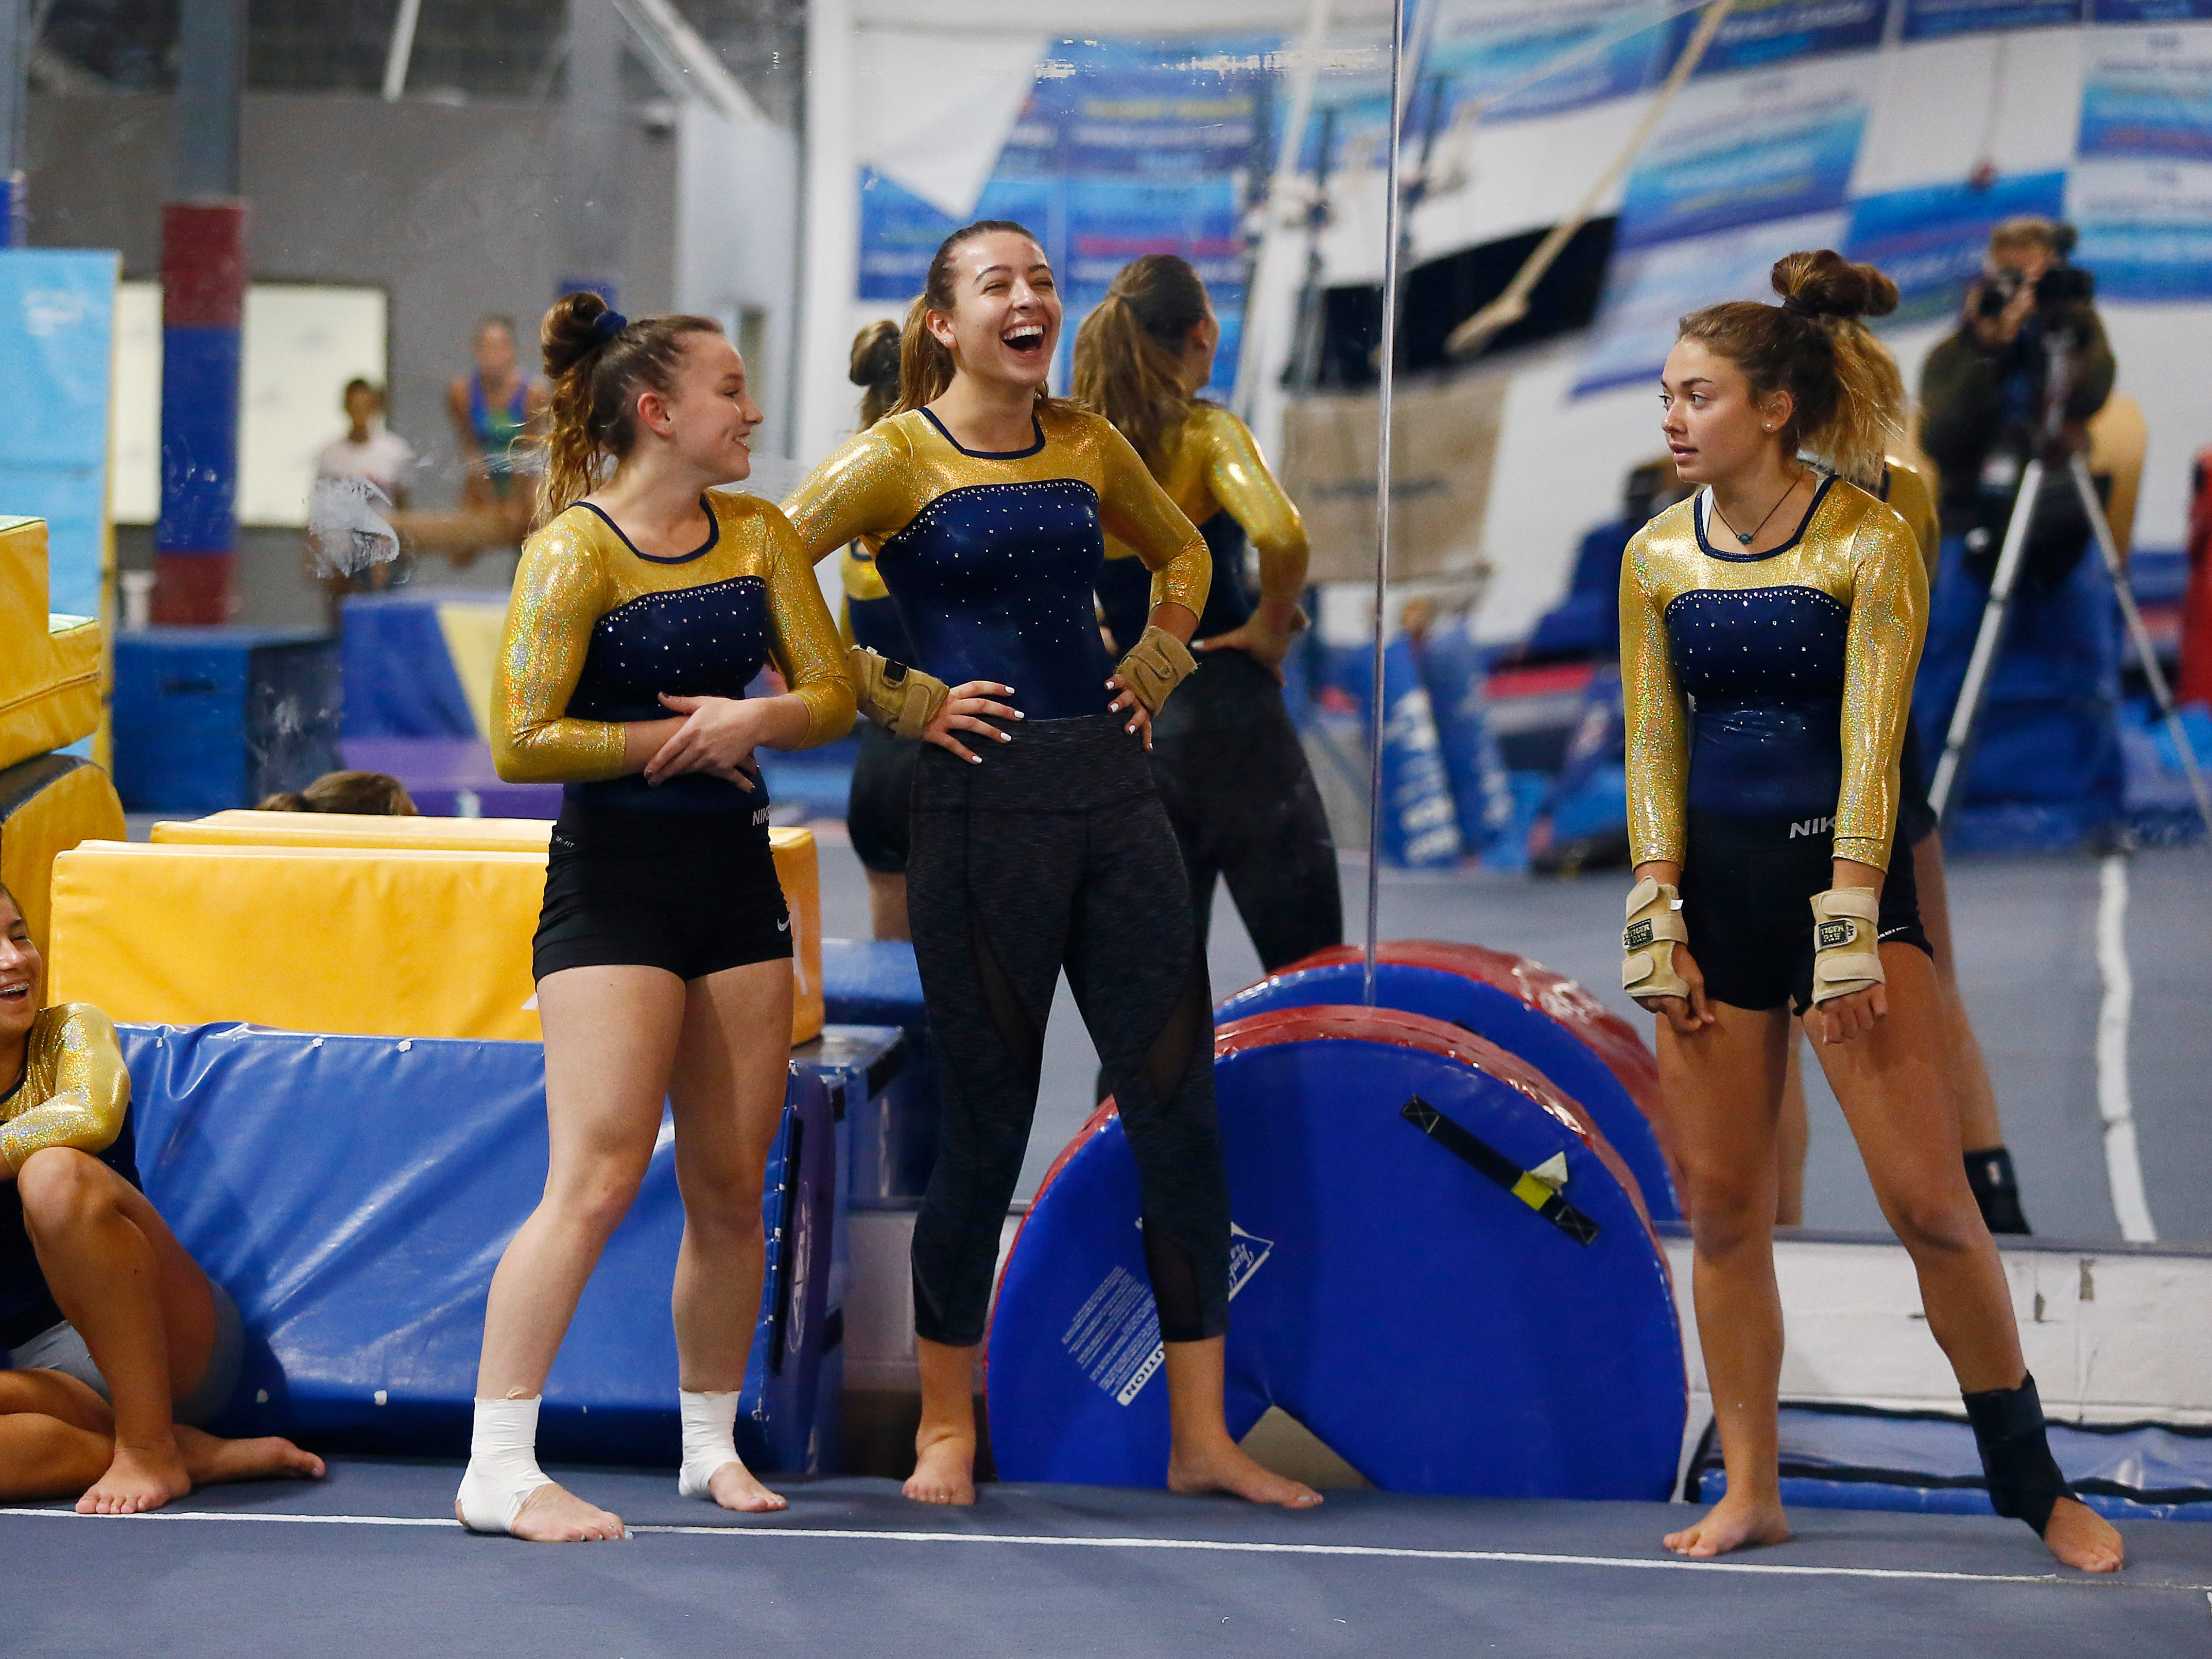 Morgan Valdes, l, Tiffany Zieba, Nicole Arevalo and Ashley Miller share a laugh during gymnastics practice at Northern Elite Gymnastics & Cheer in Flanders.  Roxbury High School has just launched a girls gymnastics team. September 25, 2018, Flanders, NJ